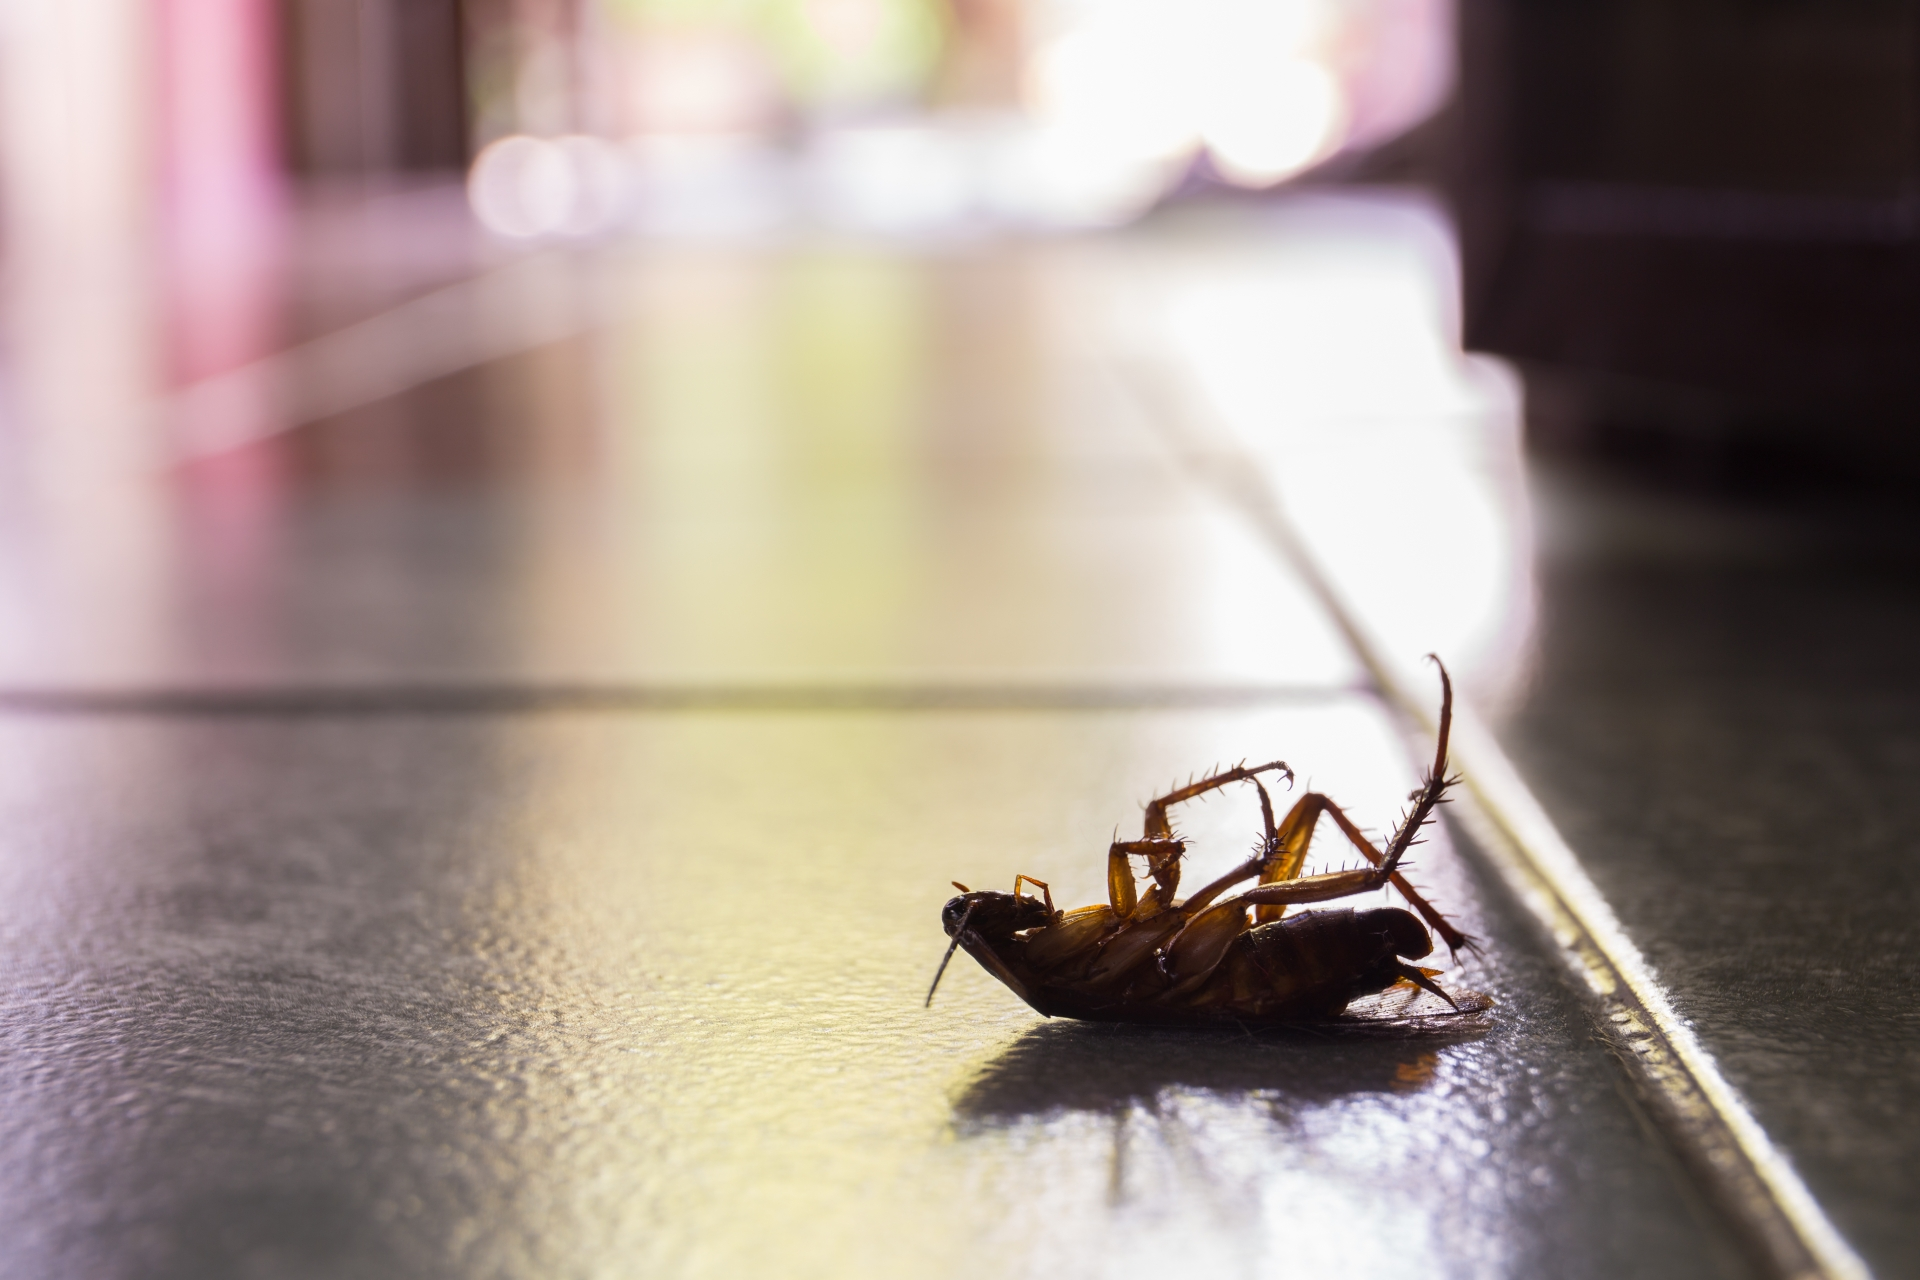 Cockroach Control, Pest Control in South Kensington, SW7. Call Now 020 8166 9746